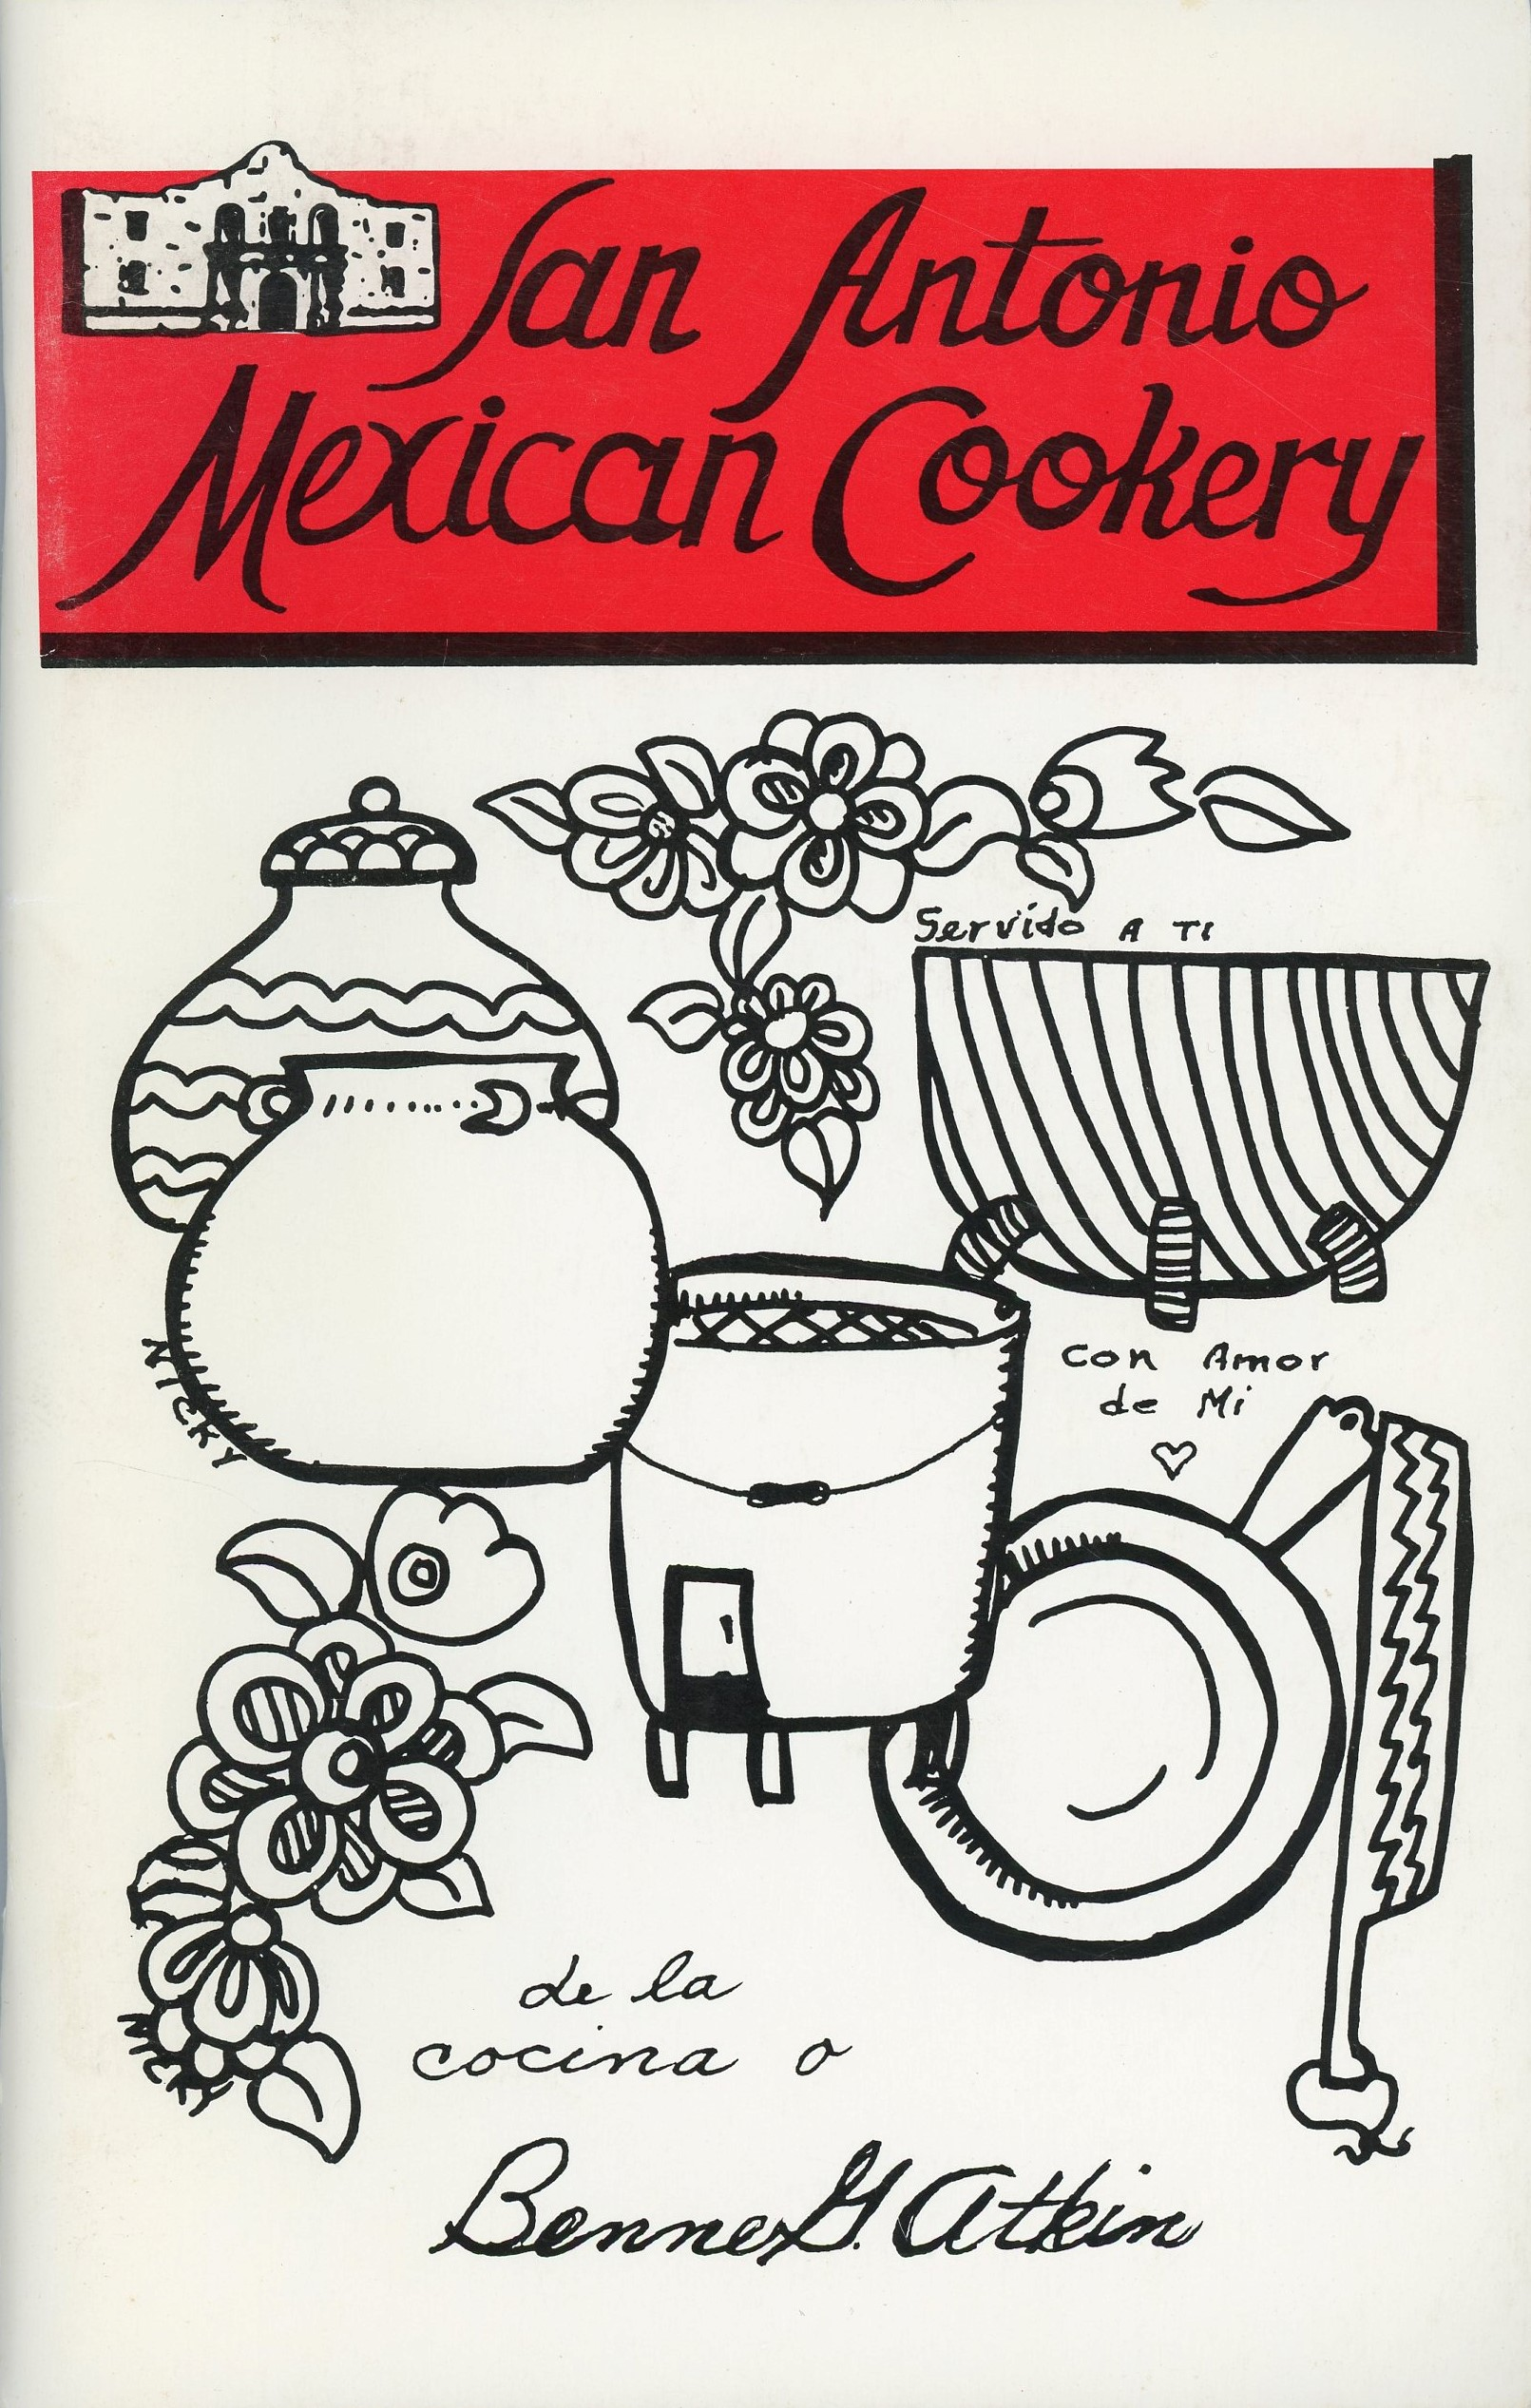 Cover for  San Antonio Mexican cookery